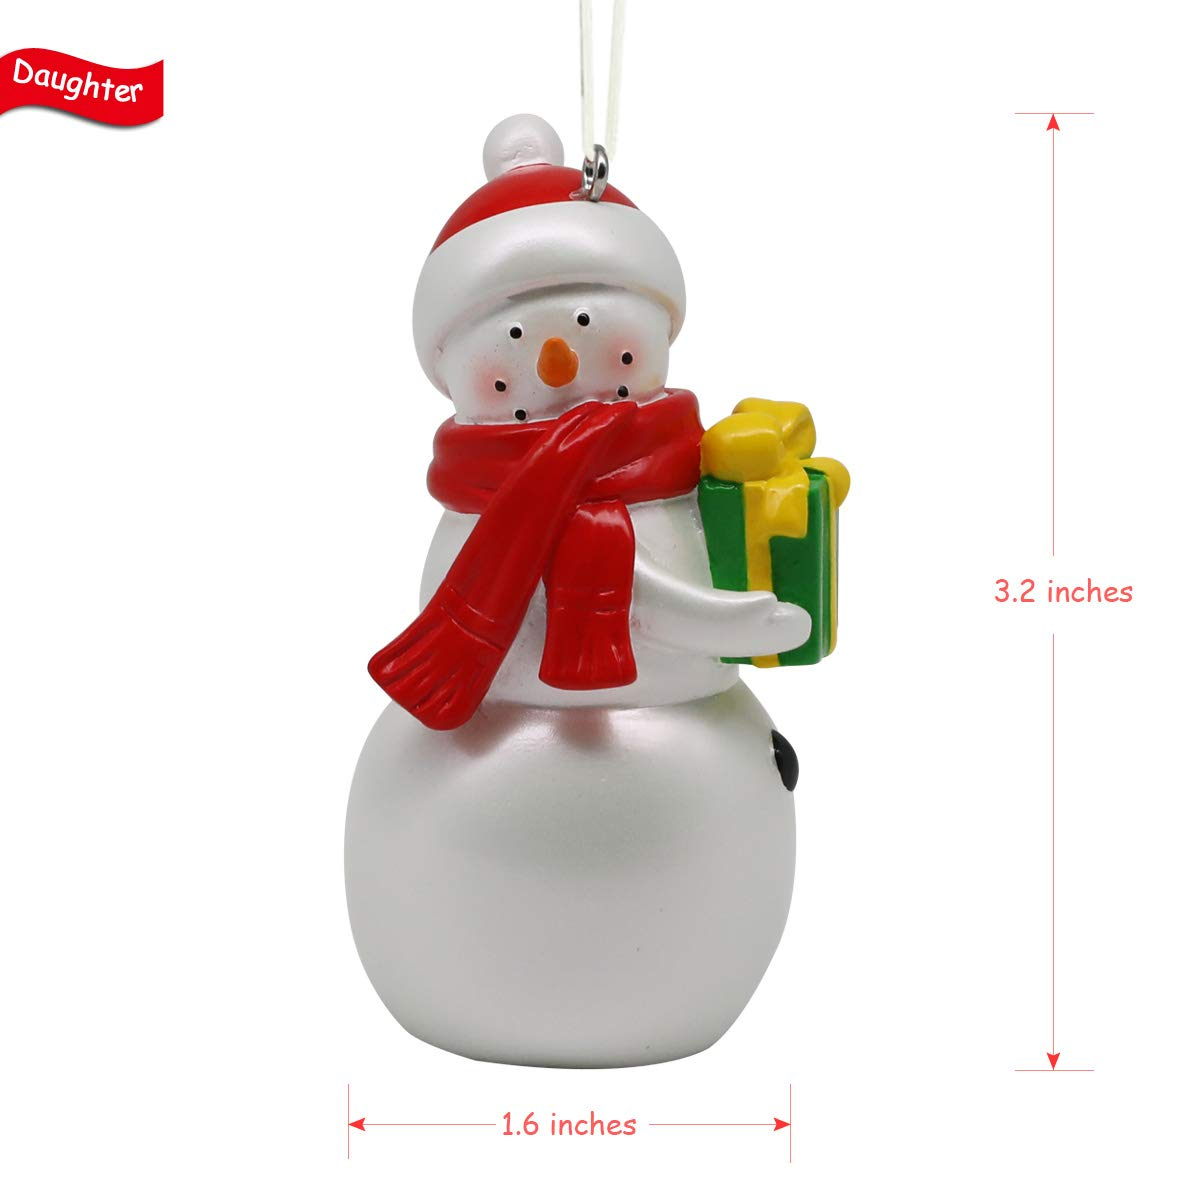 BC BINGO CASTLE Christmas Ornament Gifts 4 Piece Set 2019 Year Dated White Snowman Christmas Tree Home Decorating Small Objects White BC1807-01